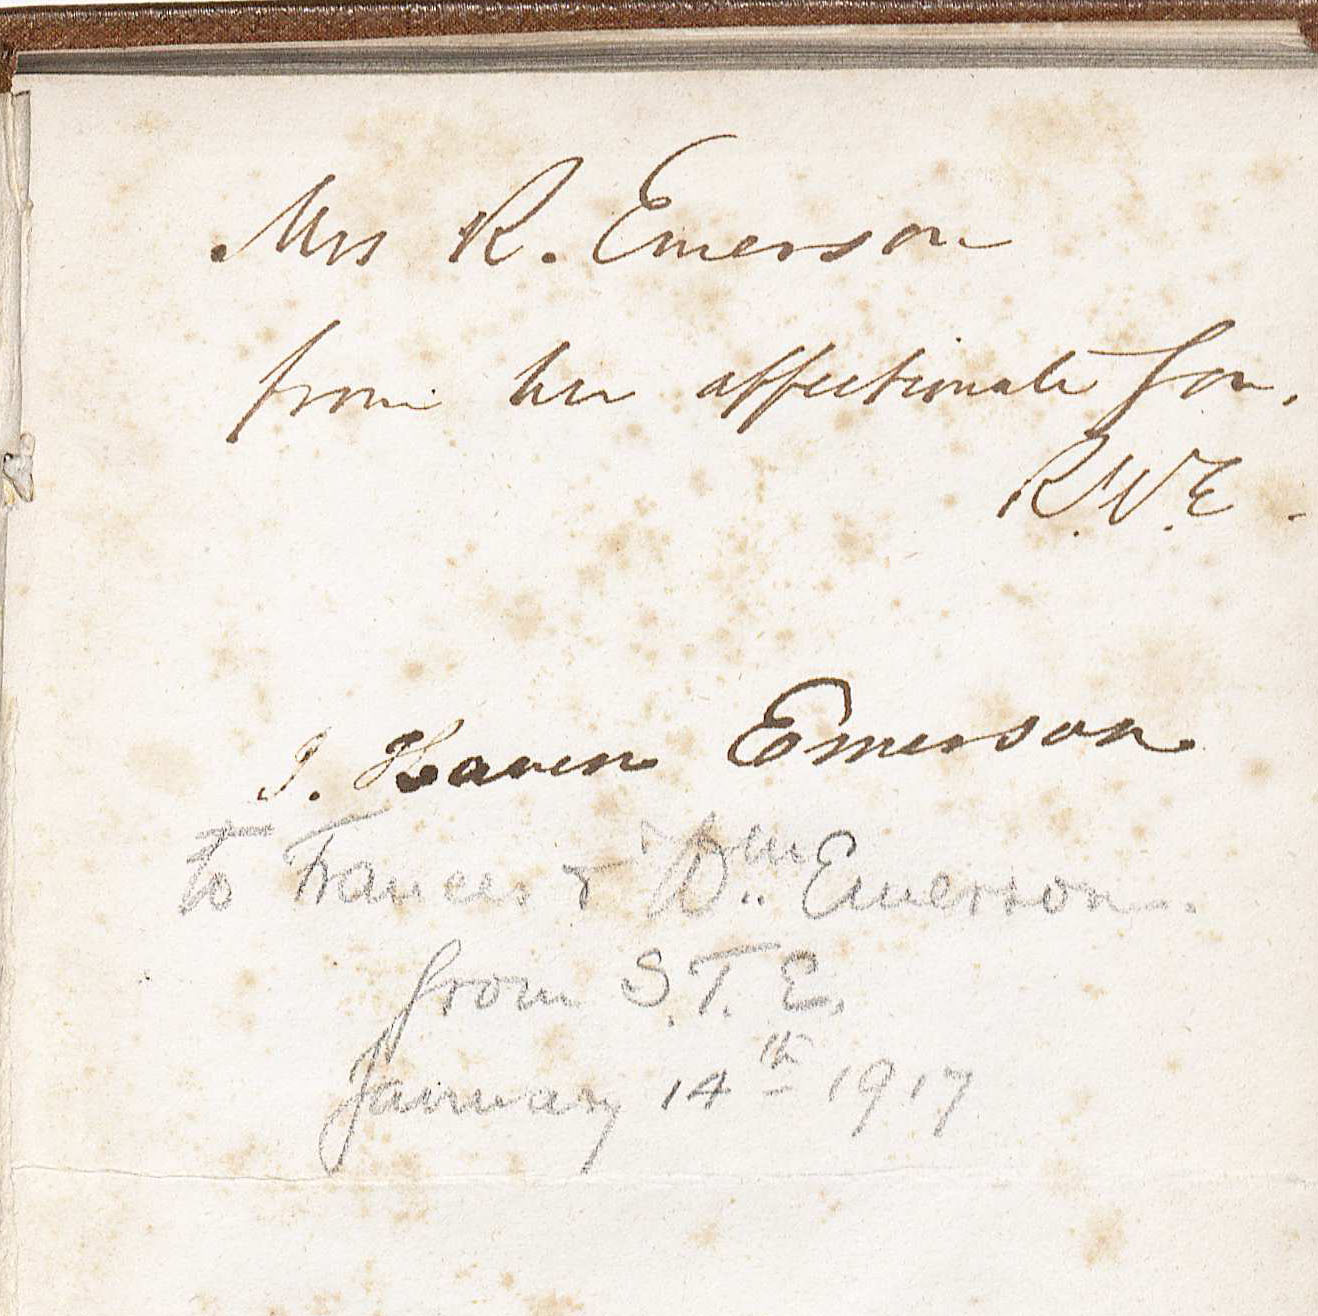 abcs of special collections n is for notes from under grounds detail of the inscription from emerson to his mother on the endpapers of nature